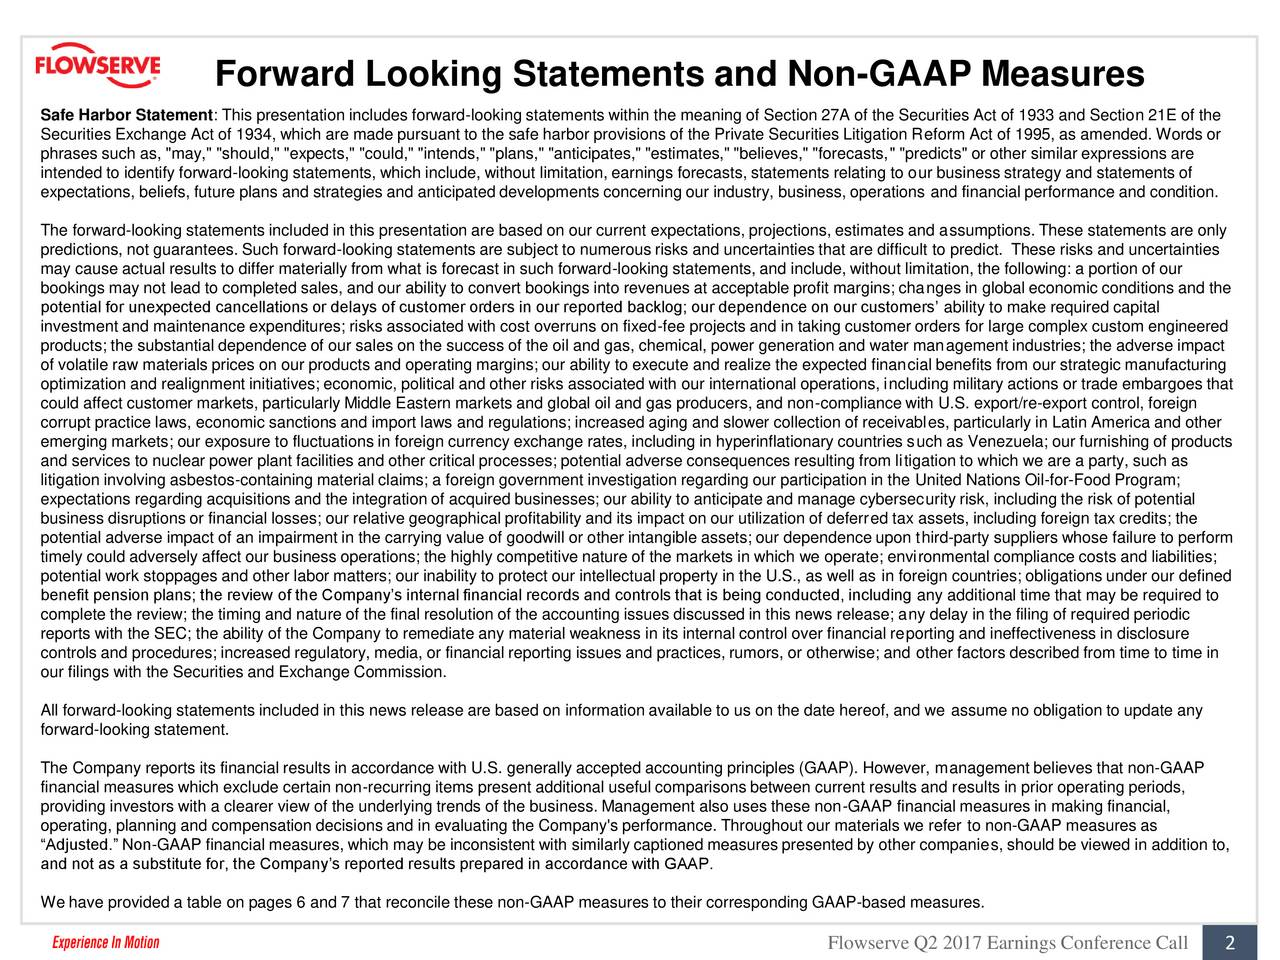 "Safe Harbor Statement: This presentation includes forward-looking statements within the meaning of Section 27A of the Securities Act of 1933 and Section 21E of the Securities Exchange Act of 1934, which are made pursuant to the safe harbor provisions of the Private Securities Litigation Reform Act of 1995, as amended. Words or phrases such as, ""may,"" ""should,"" ""expects,"" ""could,"" ""intends,"" ""plans,"" ""anticipates,"" ""estimates,"" ""believes,"" ""forecasts,"" ""predicts"" or other similar expressions are intended to identify forward-looking statements, which include, without limitation, earnings forecasts, statements relating to our business strategy and statements of expectations, beliefs, future plans and strategies and anticipated developments concerning our industry, business, operations and financial performance and condition. The forward-looking statements included in this presentation are based on our current expectations, projections, estimates and assumptions. These statements are only predictions, not guarantees. Such forward-looking statements are subject to numerous risks and uncertainties that are difficult to predict. These risks and uncertainties may cause actual results to differ materially from what is forecast in such forward-looking statements, and include, without limitation, the following: a portion of our bookings may not lead to completed sales, and our ability to convert bookings into revenues at acceptable profit margins; changes in global economic conditions and the potential for unexpected cancellations or delays of customer orders in our reported backlog; our dependence on our customers ability to make required capital investment and maintenance expenditures; risks associated with cost overruns on fixed-fee projects and in taking customer orders for large complex custom engineered products; the substantial dependence of our sales on the success of the oil and gas, chemical, power generation and water management industries; the adverse impact of volatile raw materials prices on our products and operating margins; our ability to execute and realize the expected financial benefits from our strategic manufacturing optimization and realignment initiatives; economic, political and other risks associated with our international operations, including military actions or trade embargoes that could affect customer markets, particularly Middle Eastern markets and global oil and gas producers, and non-compliance with U.S. export/re-export control, foreign corrupt practice laws, economic sanctions and import laws and regulations; increased aging and slower collection of receivables, particularly in Latin America and other emerging markets; our exposure to fluctuations in foreign currency exchange rates, including in hyperinflationary countries such as Venezuela; our furnishing of products and services to nuclear power plant facilities and other critical processes; potential adverse consequences resulting from litigation to which we are a party, such as litigation involving asbestos-containing material claims; a foreign government investigation regarding our participation in the United Nations Oil-for-Food Program; expectations regarding acquisitions and the integration of acquired businesses; our ability to anticipate and manage cybersecurity risk, including the risk of potential business disruptions or financial losses; our relative geographical profitability and its impact on our utilization of deferred tax assets, including foreign tax credits; the potential adverse impact of an impairment in the carrying value of goodwill or other intangible assets; our dependence upon third-party suppliers whose failure to perform timely could adversely affect our business operations; the highly competitive nature of the markets in which we operate; environmental compliance costs and liabilities; potential work stoppages and other labor matters; our inability to protect our intellectual property in the U.S., as well as in foreign countries; obligations under our defined benefit pension plans; the review of the Companys internal financial records and controls that is being conducted, including any additional time that may be required to complete the review; the timing and nature of the final resolution of the accounting issues discussed in this news release; any delay in the filing of required periodic reports with the SEC; the ability of the Company to remediate any material weakness in its internal control over financial reporting and ineffectiveness in disclosure controls and procedures; increased regulatory, media, or financial reporting issues and practices, rumors, or otherwise; and other factors described from time to time in our filings with the Securities and Exchange Commission. All forward-looking statements included in this news release are based on information available to us on the date hereof, and we assume no obligation to update any forward-looking statement. The Company reports its financial results in accordance with U.S. generally accepted accounting principles (GAAP). However, management believes that non-GAAP financial measures which exclude certain non-recurring items present additional useful comparisons between current results and results in prior operating periods, providing investors with a clearer view of the underlying trends of the business. Management also uses these non-GAAP financial measures in making financial, operating, planning and compensation decisions and in evaluating the Company's performance. Throughout our materials we refer to non-GAAP measures as Adjusted. Non-GAAP financial measures, which may be inconsistent with similarly captioned measures presented by other companies, should be viewed in addition to, and not as a substitute for, the Companys reported results prepared in accordance with GAAP. We have provided a table on pages 6 and 7 that reconcile these non-GAAP measures to their corresponding GAAP-based measures. Flowserve Q2 2017 Earnings Conference Call 2"